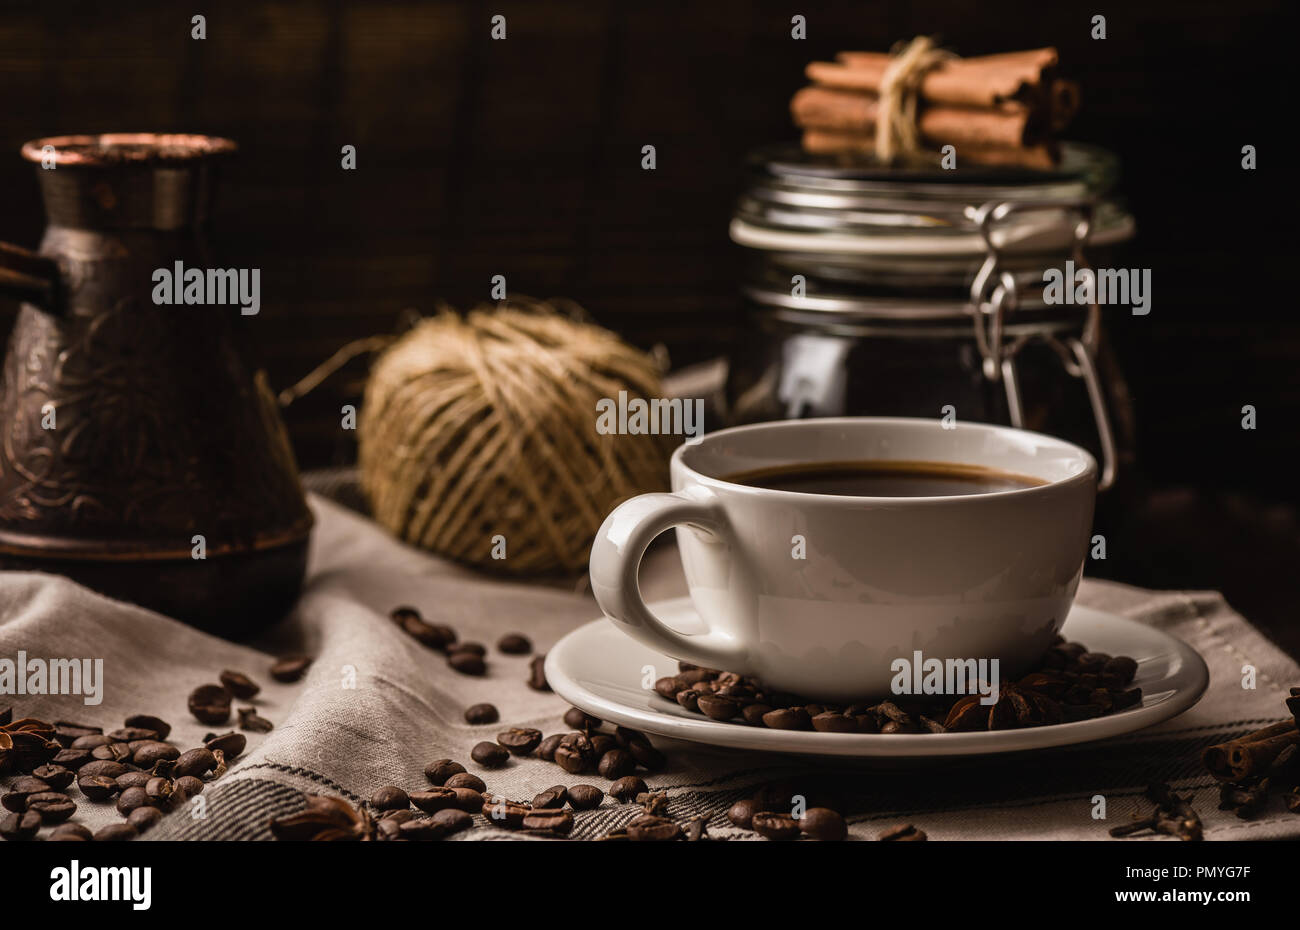 Coffee cup with various igredients, beans and kitchen equipment - Stock Image